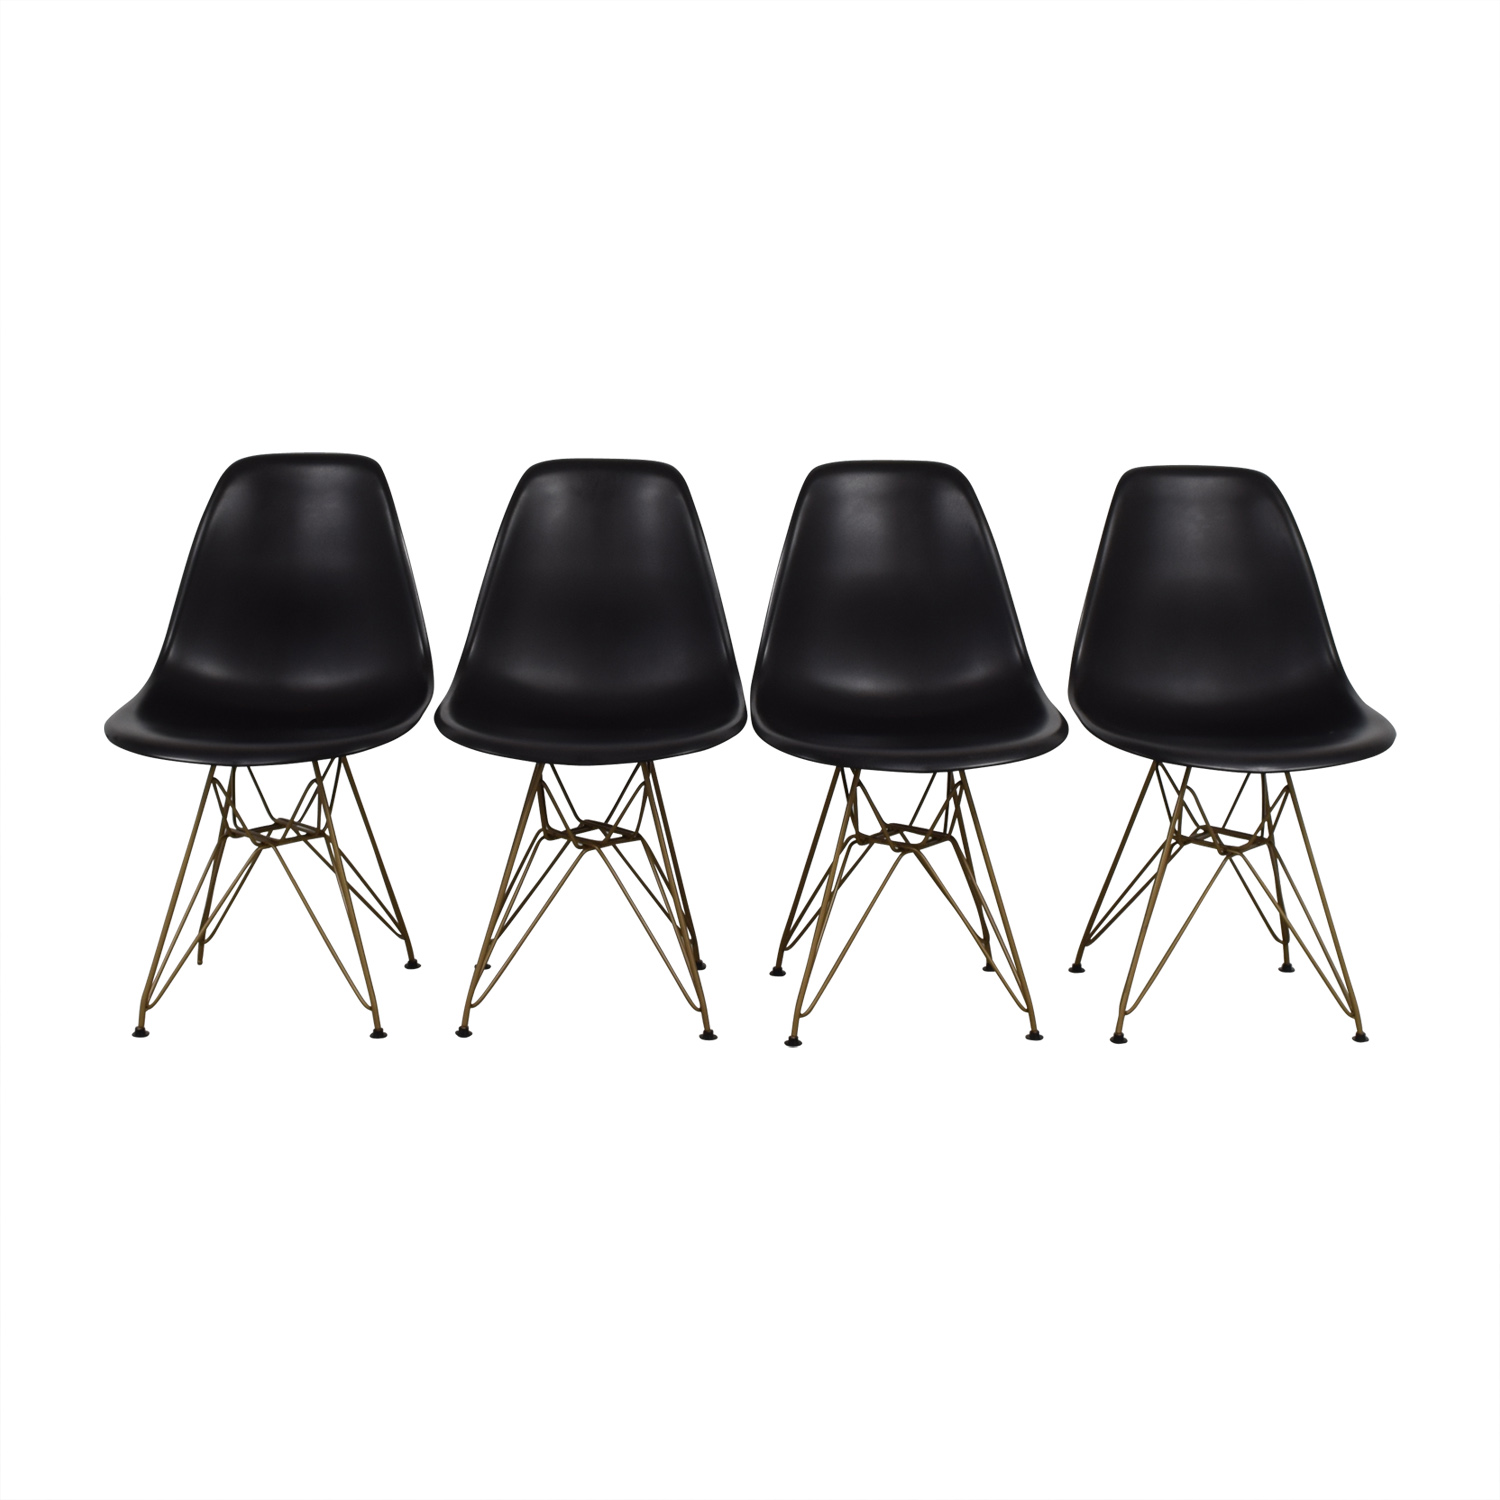 Junia Junia Black Side Chairs used